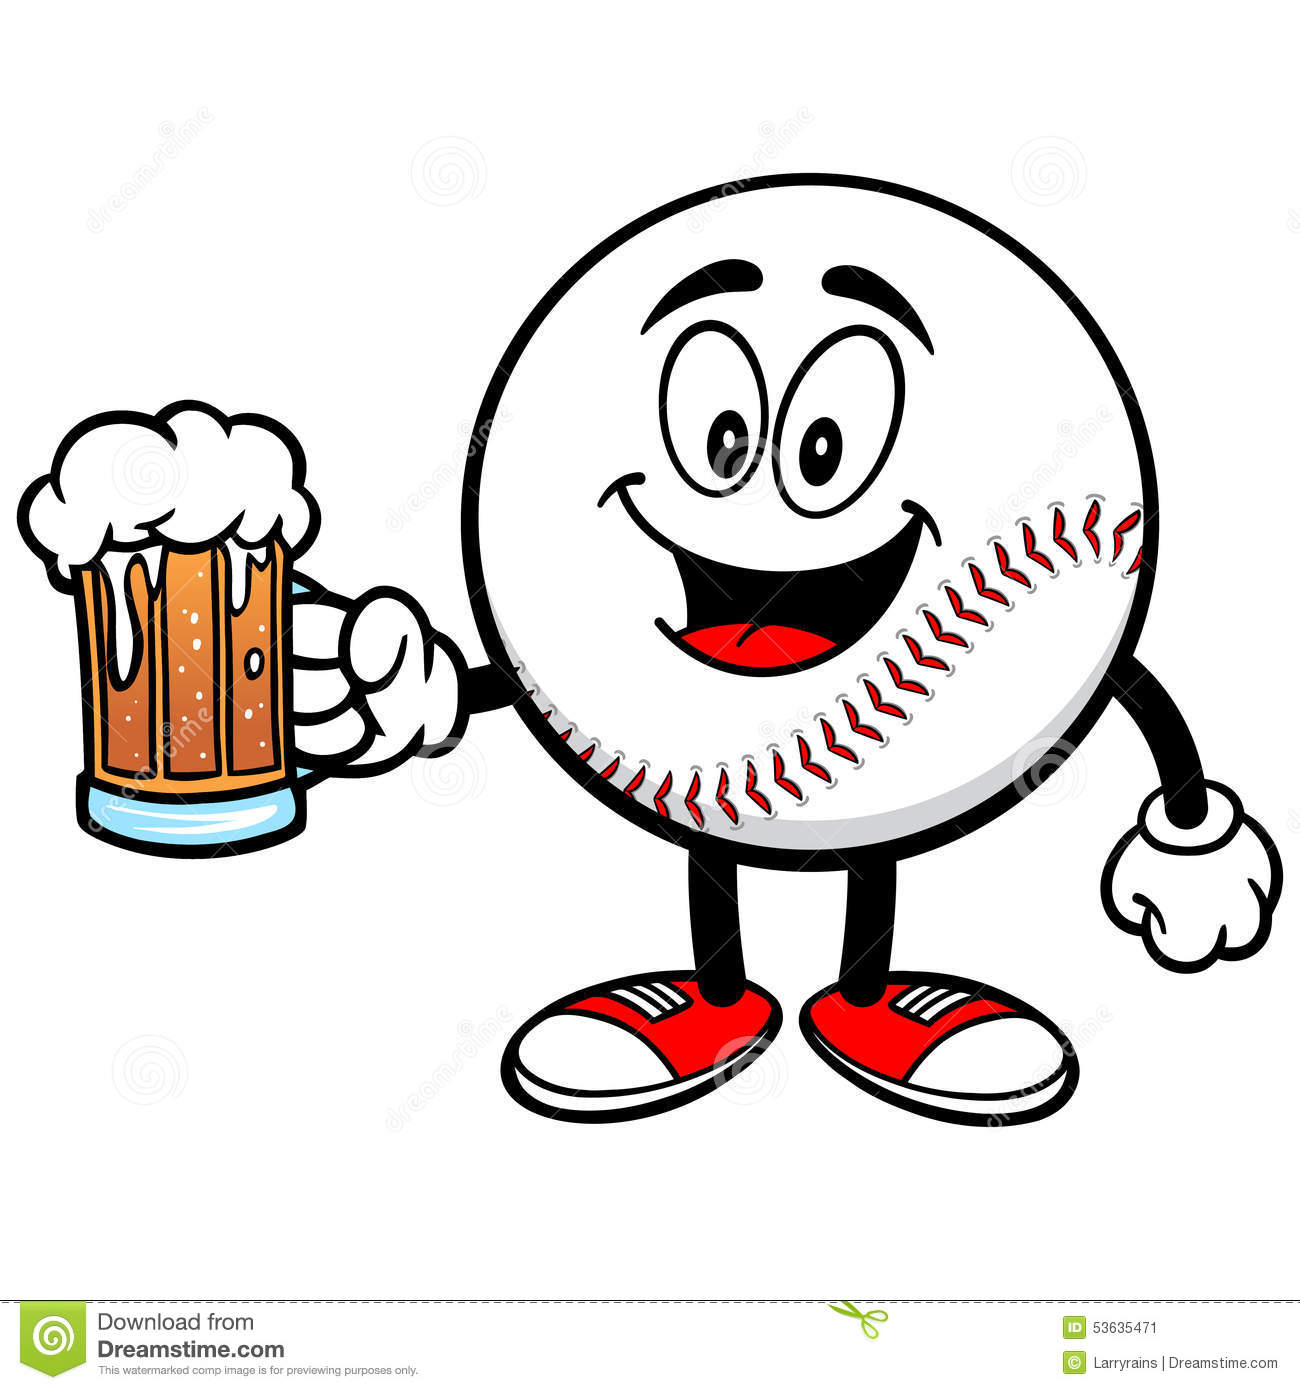 Pencil and in color. Beer clipart baseball